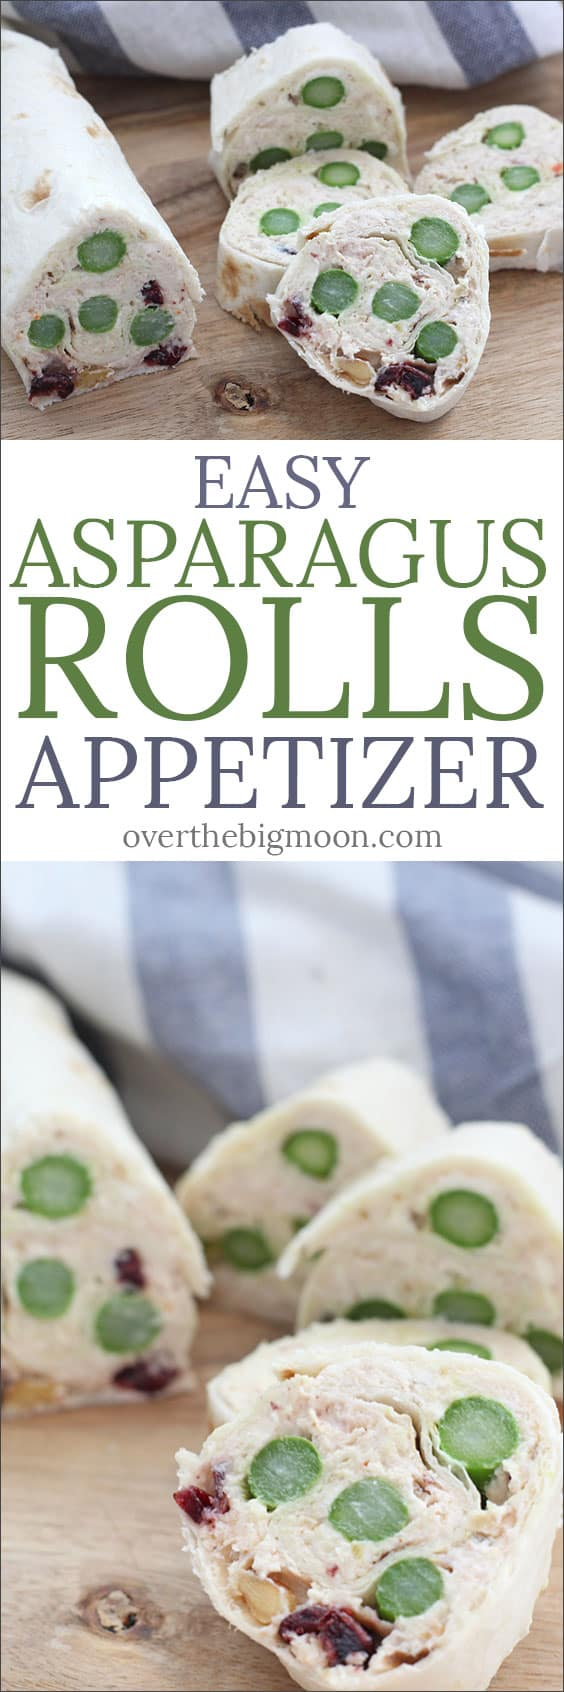 A delicious Pinwheel Asparagus Roll Appetizer - perfect for get togethers, holiday parties, BBQ's and more! From overthebigmoon.com!